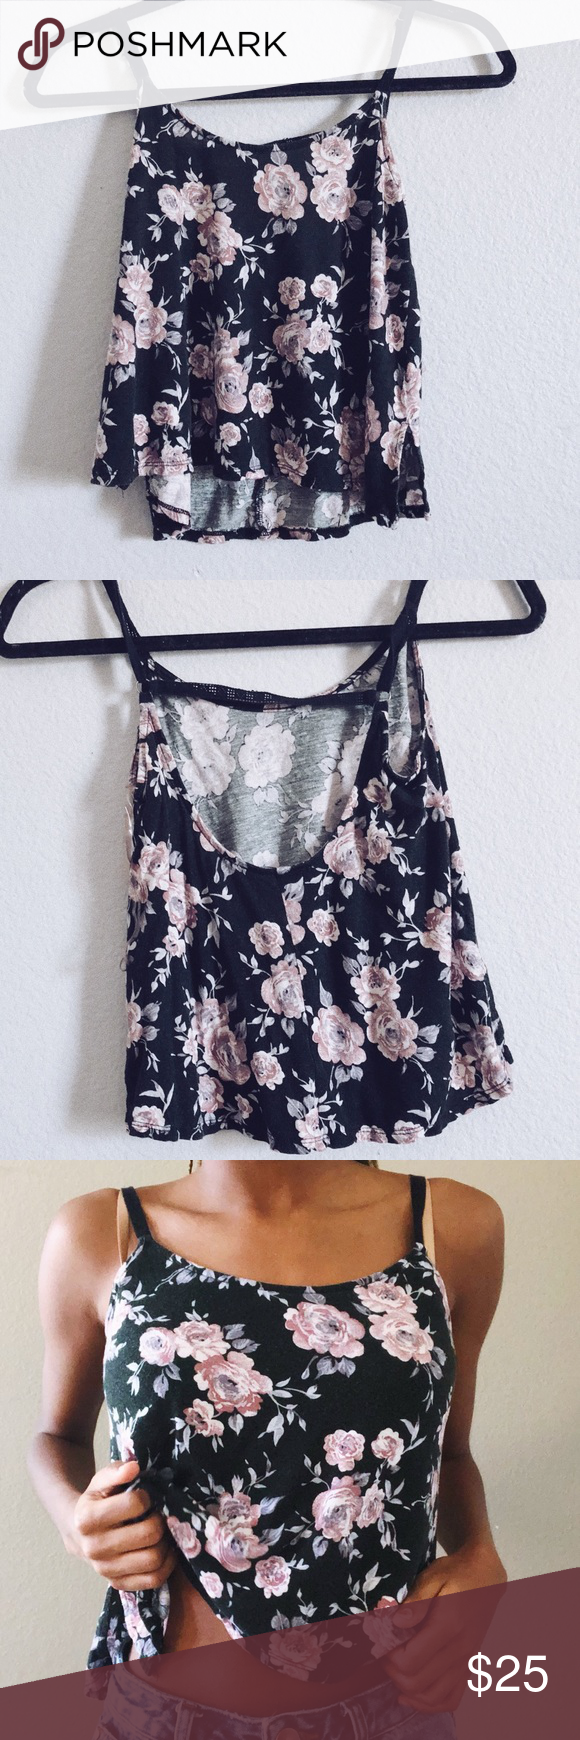 60ceaa7a3bbee Floral tank top Size xsmall-small Bought from Tillys Brand name Chloe K Tilly s  Tops Tank Tops